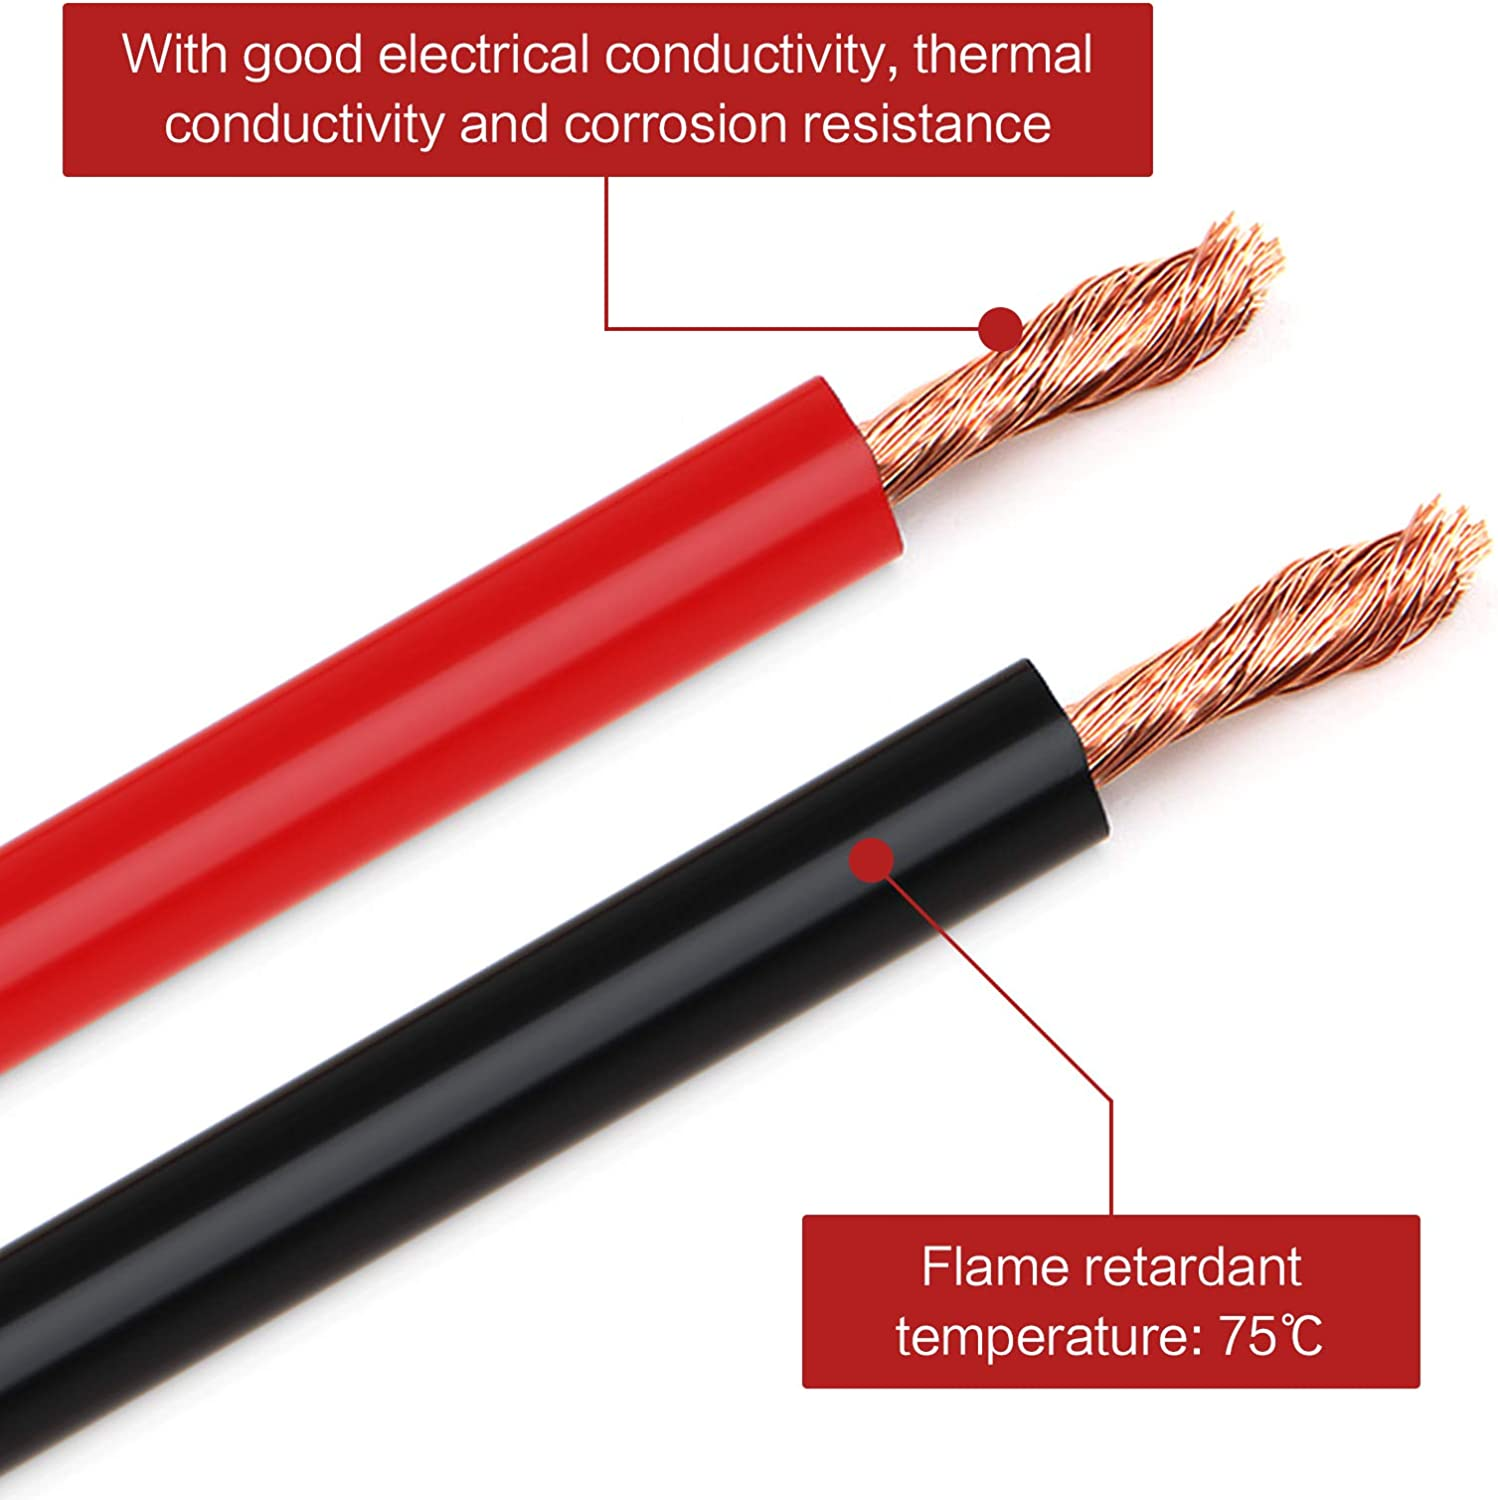 Haisheng 2PCS Black and red Battery Cable Auto Battery Cable Battery Lead Copper Flexible Wire 5AWG 100A for Cars Motorcycles Ships 54cm